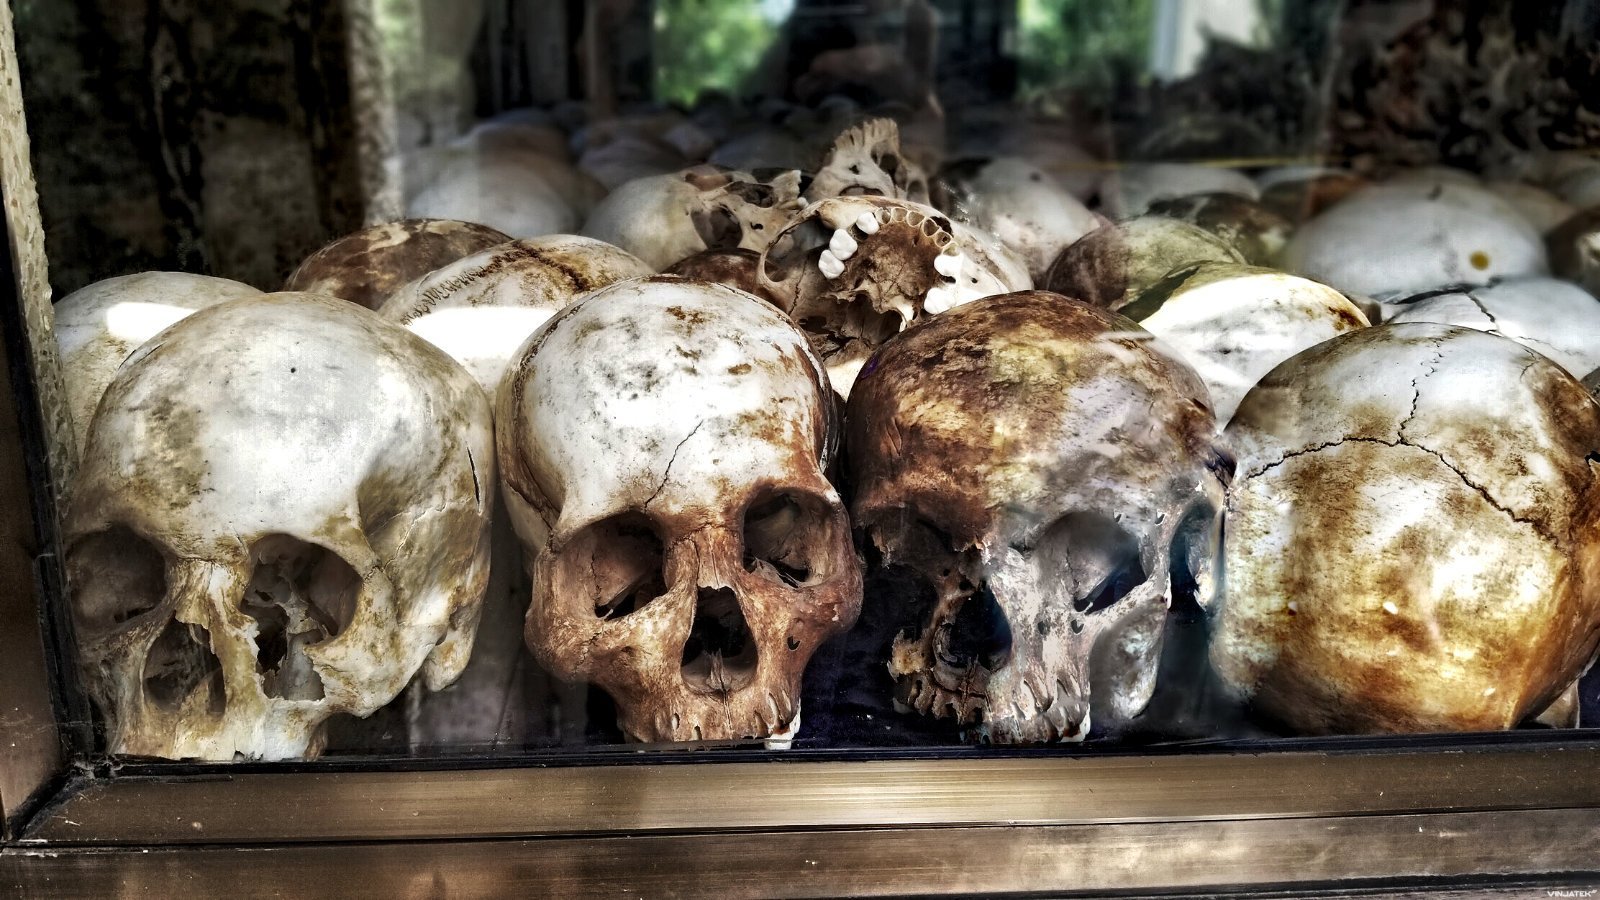 Skulls of The Khmer Rouge Killing Fields of Choeung Ek, Phnom Penh, Cambodia /// Vinjatek